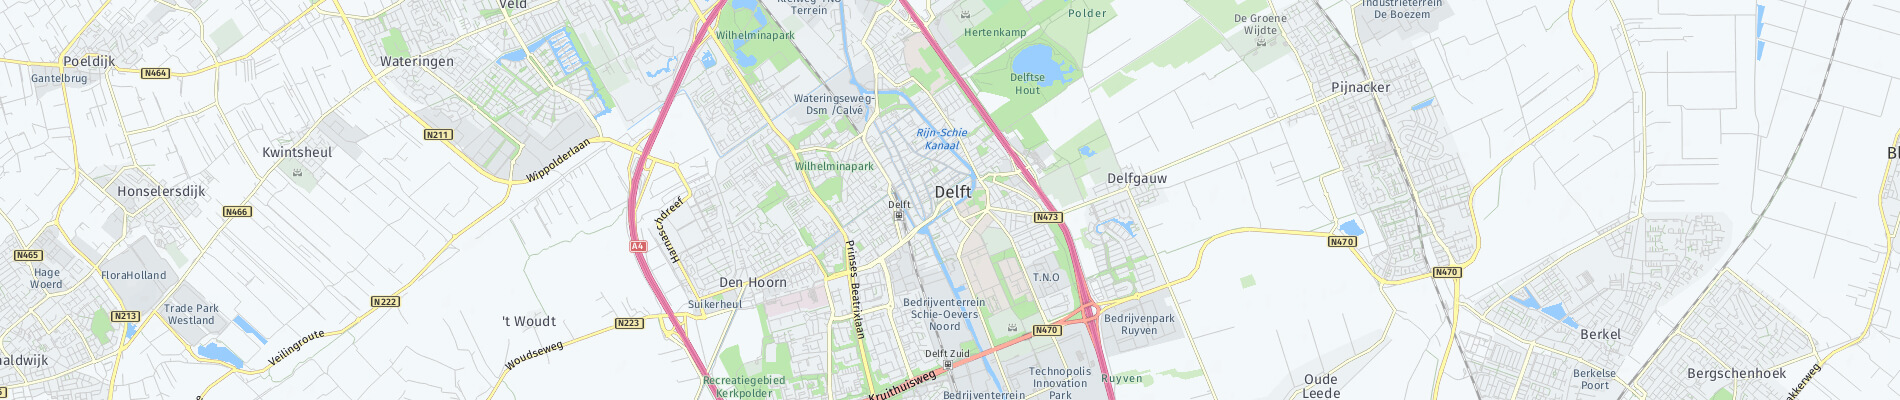 assets/images/cities/delft.jpg